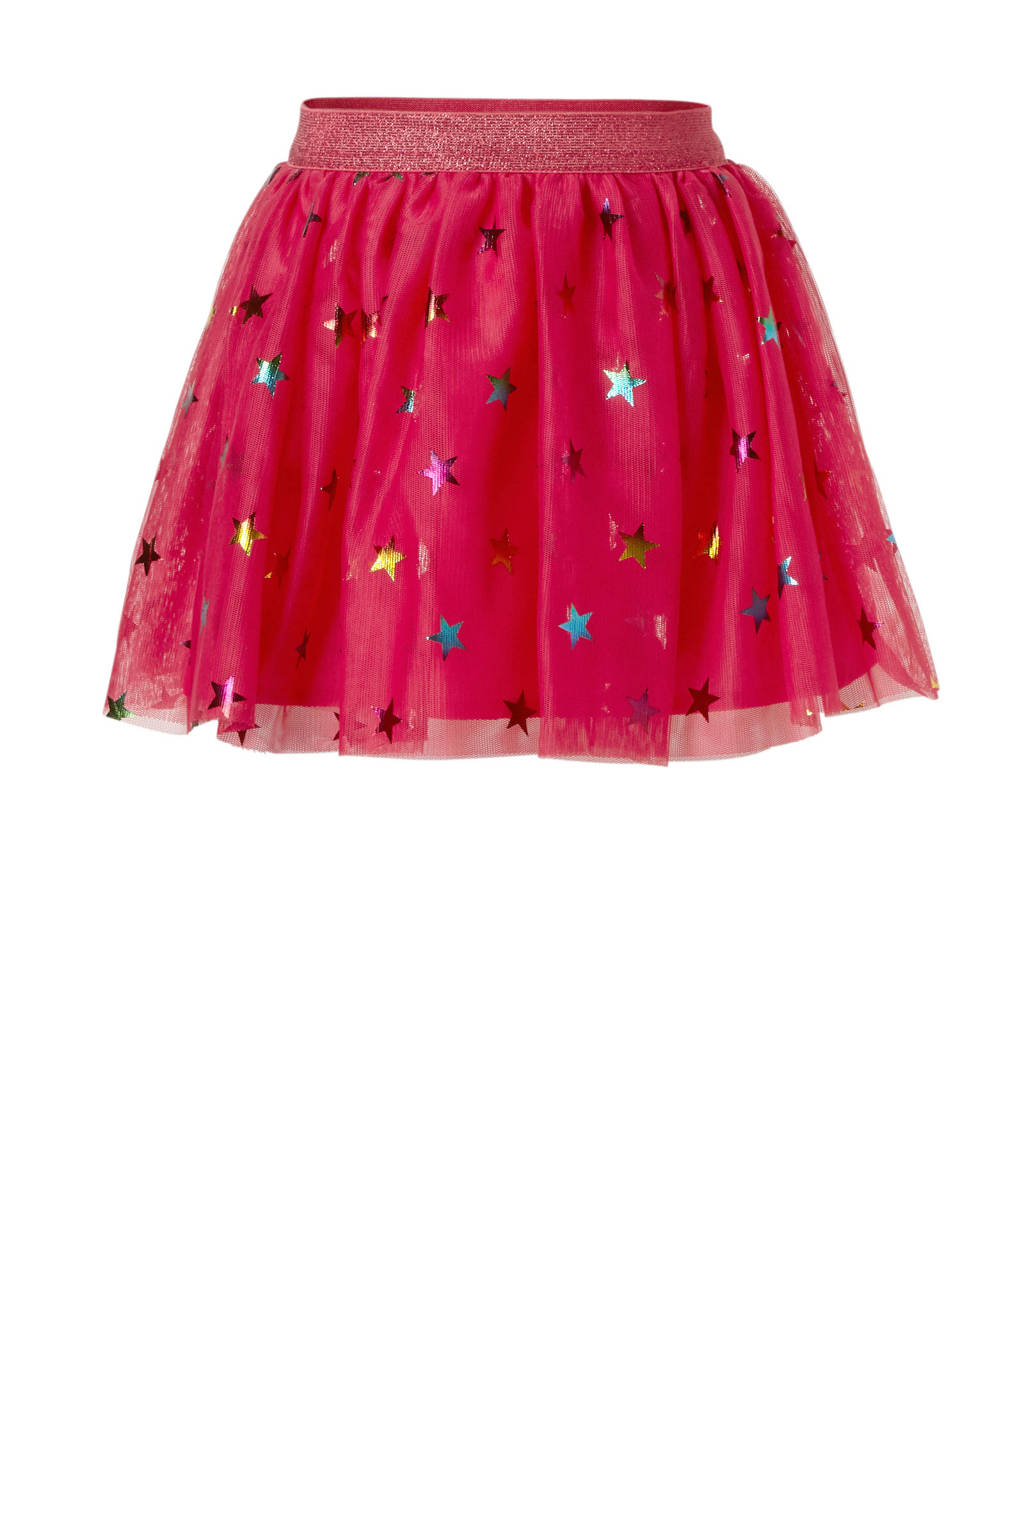 name it MINI tule rok met sterren fuchsia, Fuchsia